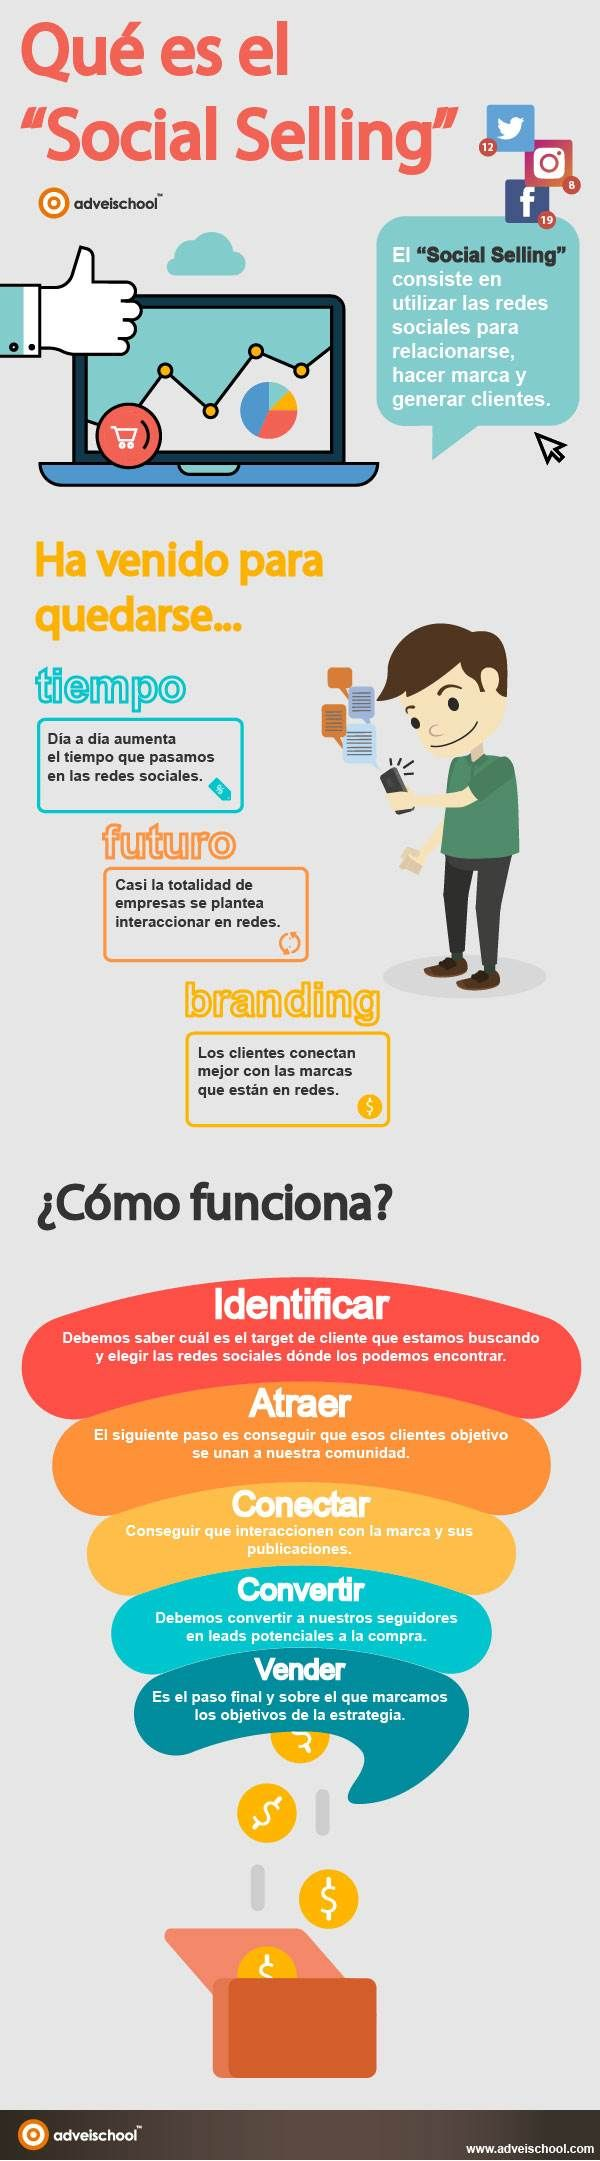 Infografía sobre qué es Social Selling. #marketing #SocialMedia